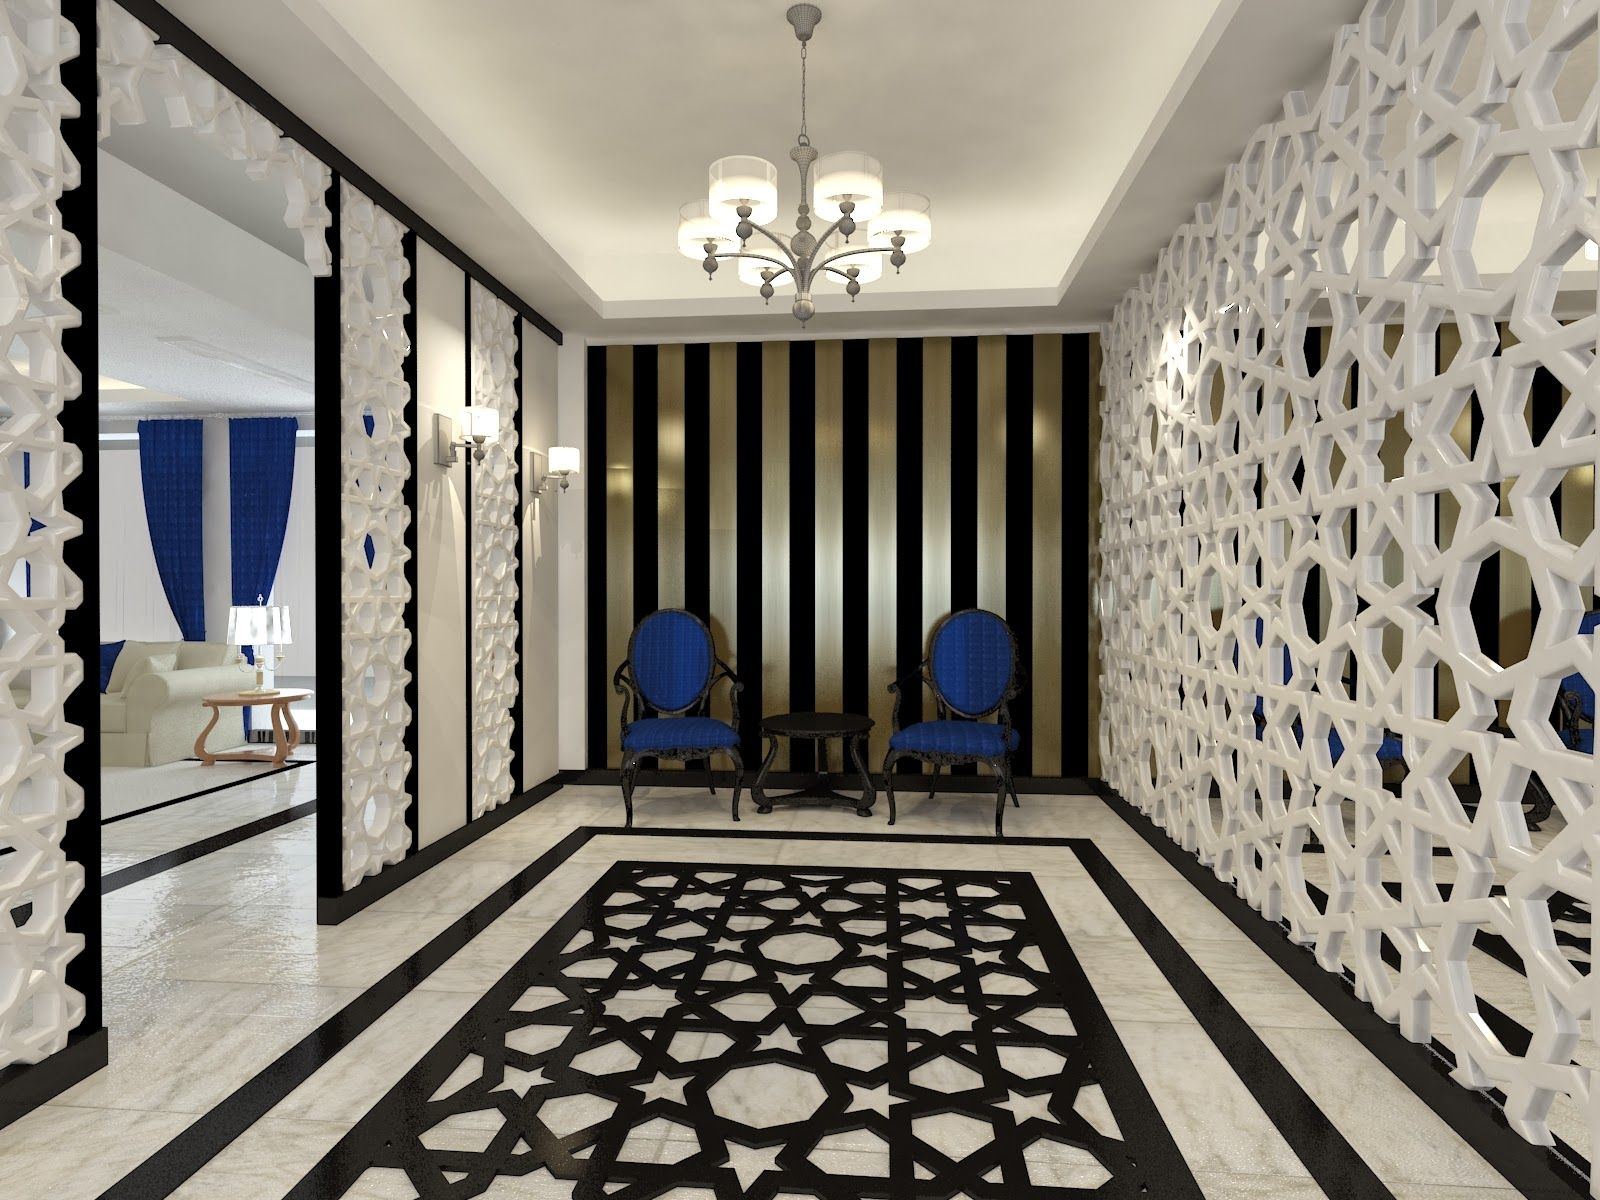 Islamic modern interior design google search banks for Best modern interior design